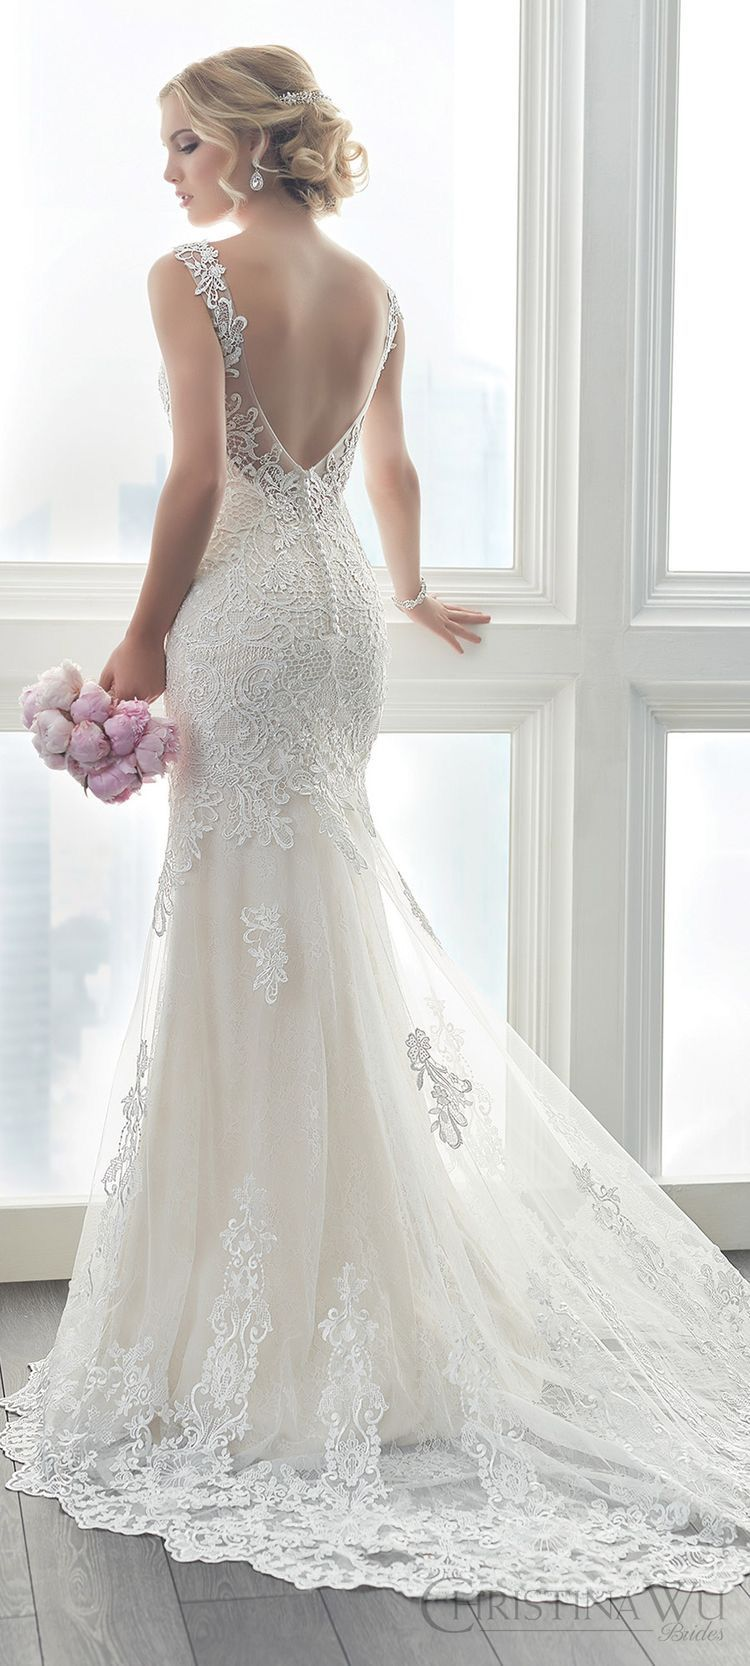 Pin by Pamela Bell English on Wedding Dresses | Pinterest | Wedding ...